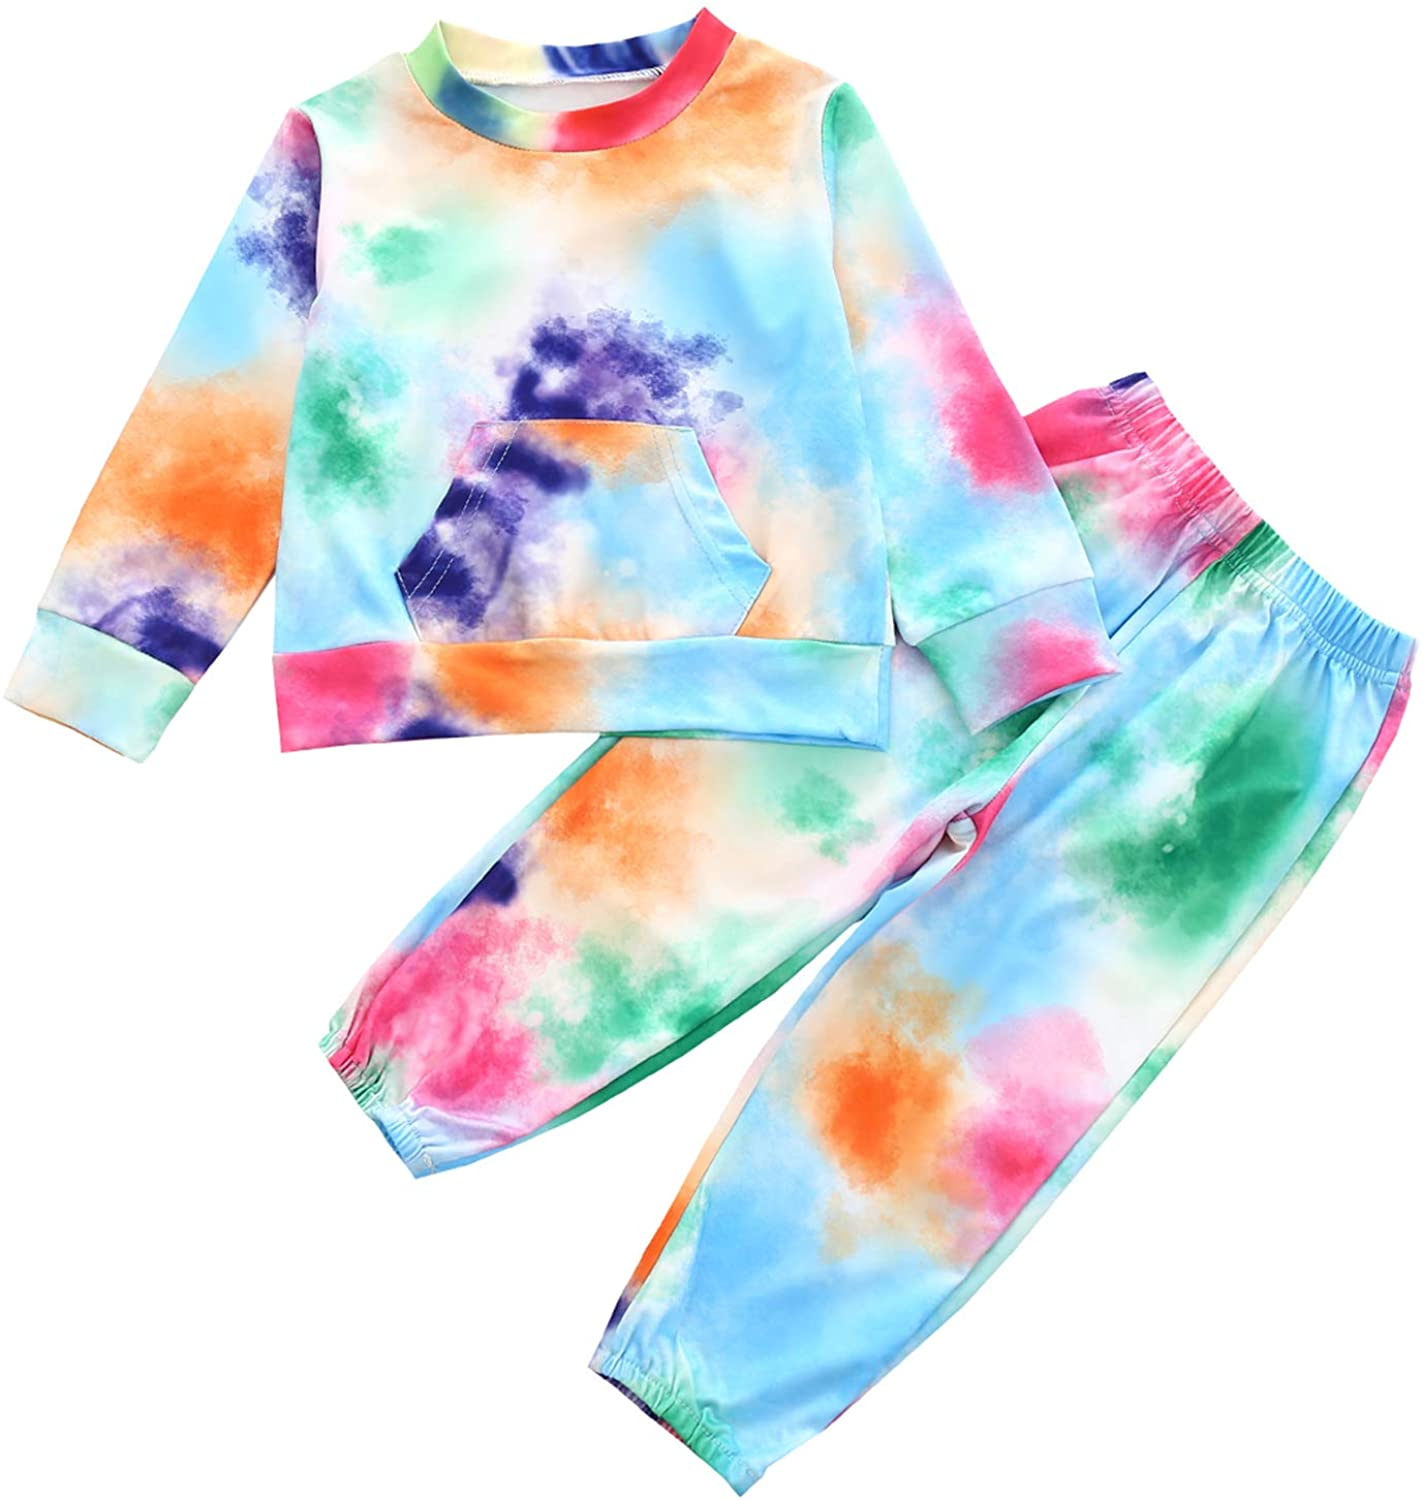 Kids Little Baby Girl Tie Dye Tracksuit Outfit Long Sleeve Pocket Top Shirt and Pants Fall Winter Set Sweatsuits